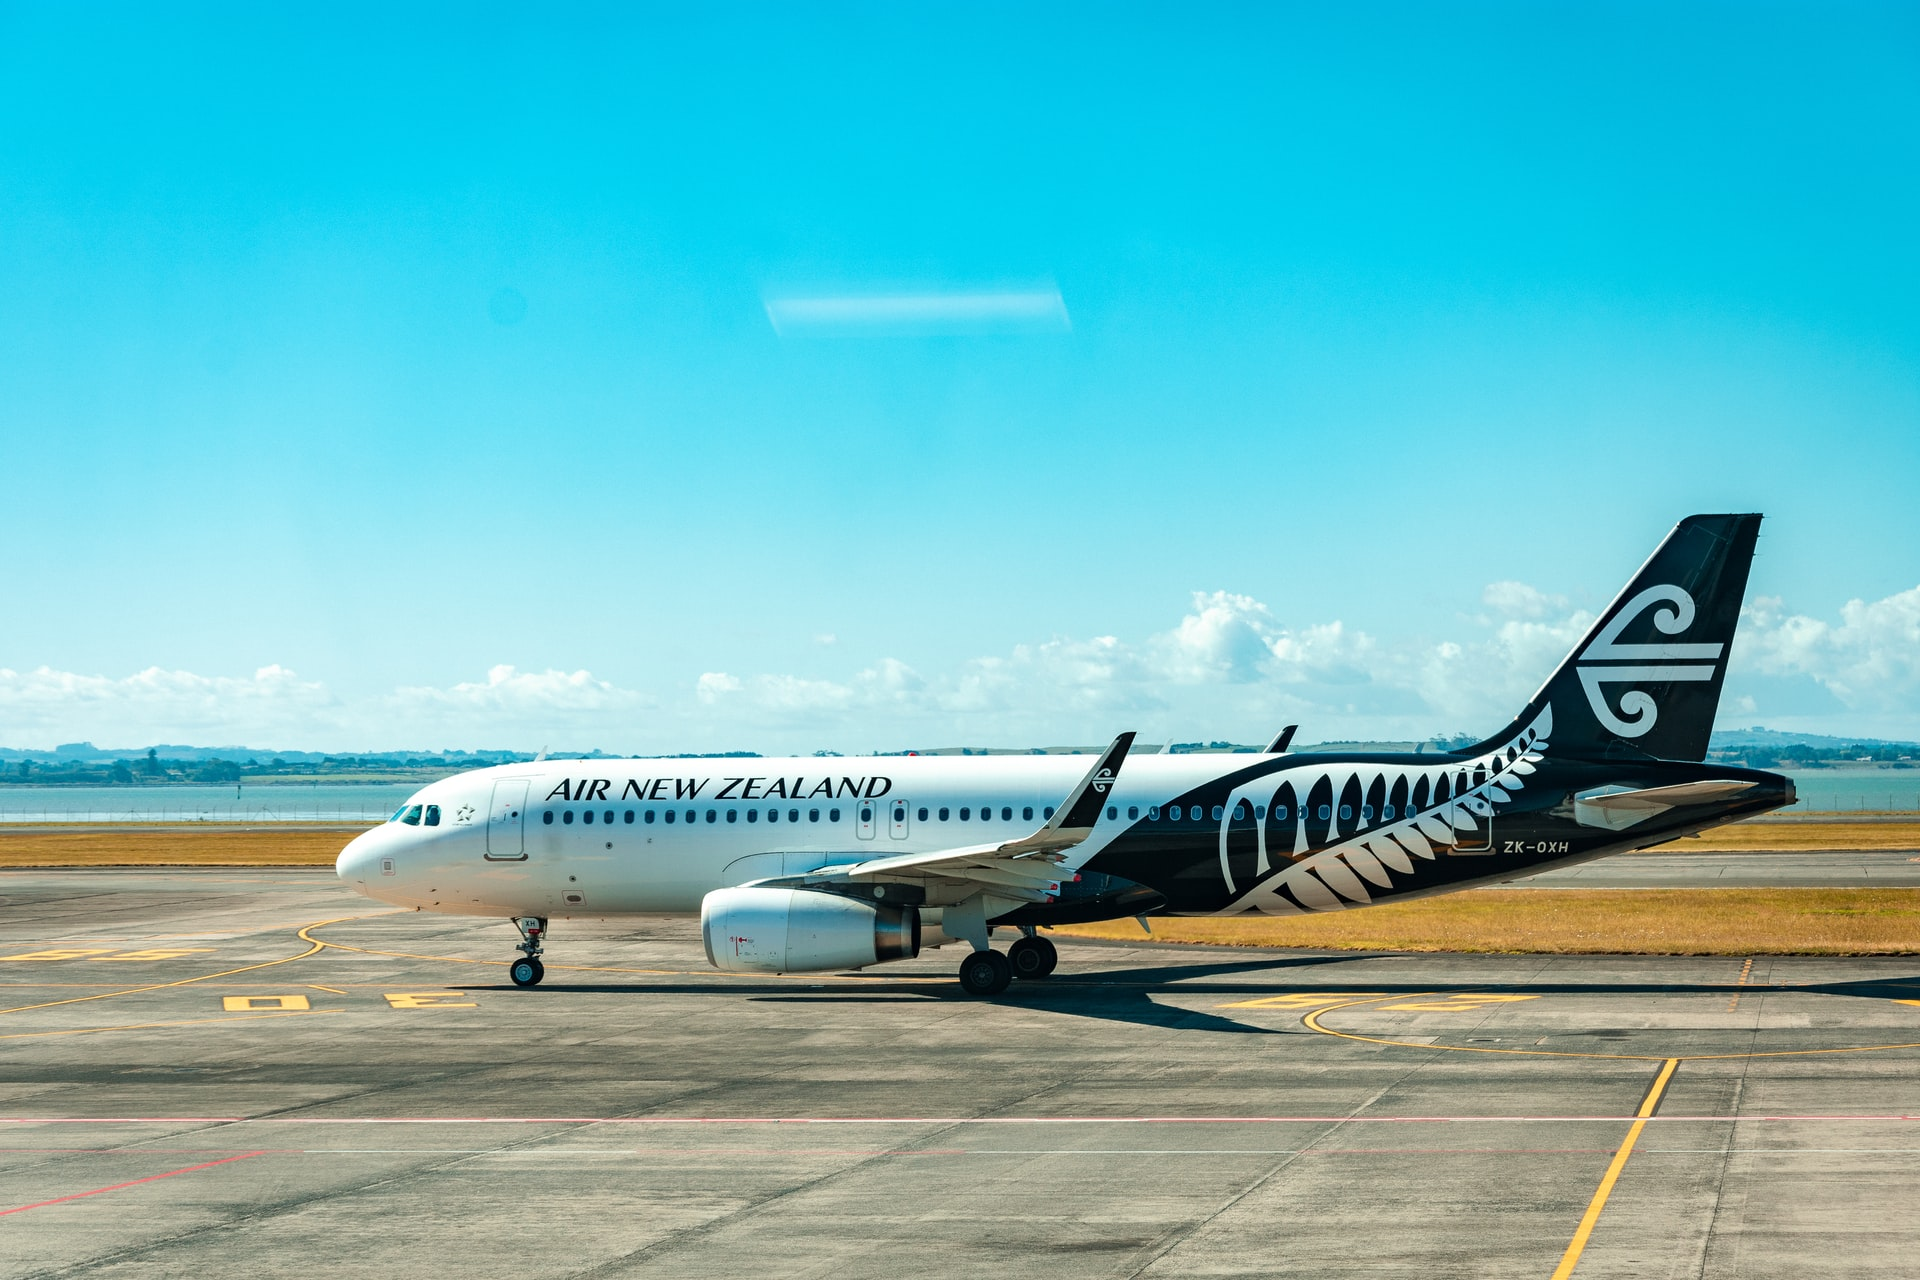 Mandatory masking on flights and Auckland's public transport – Expert Reaction